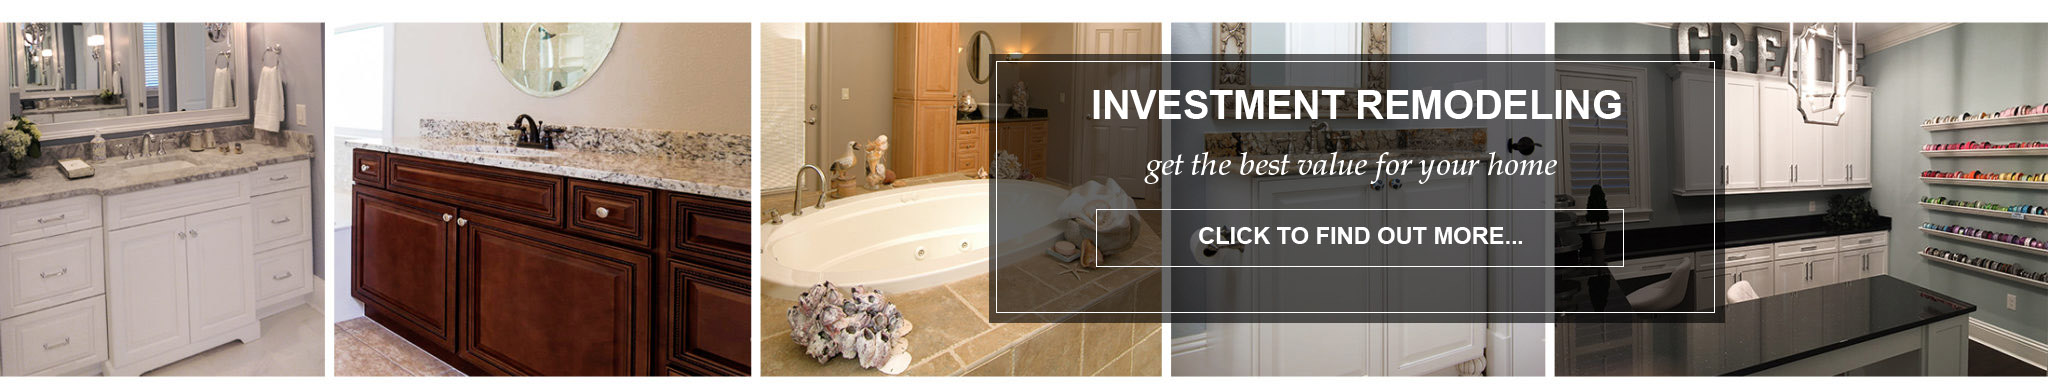 investment remodeling baths closets kitchens tallahassee